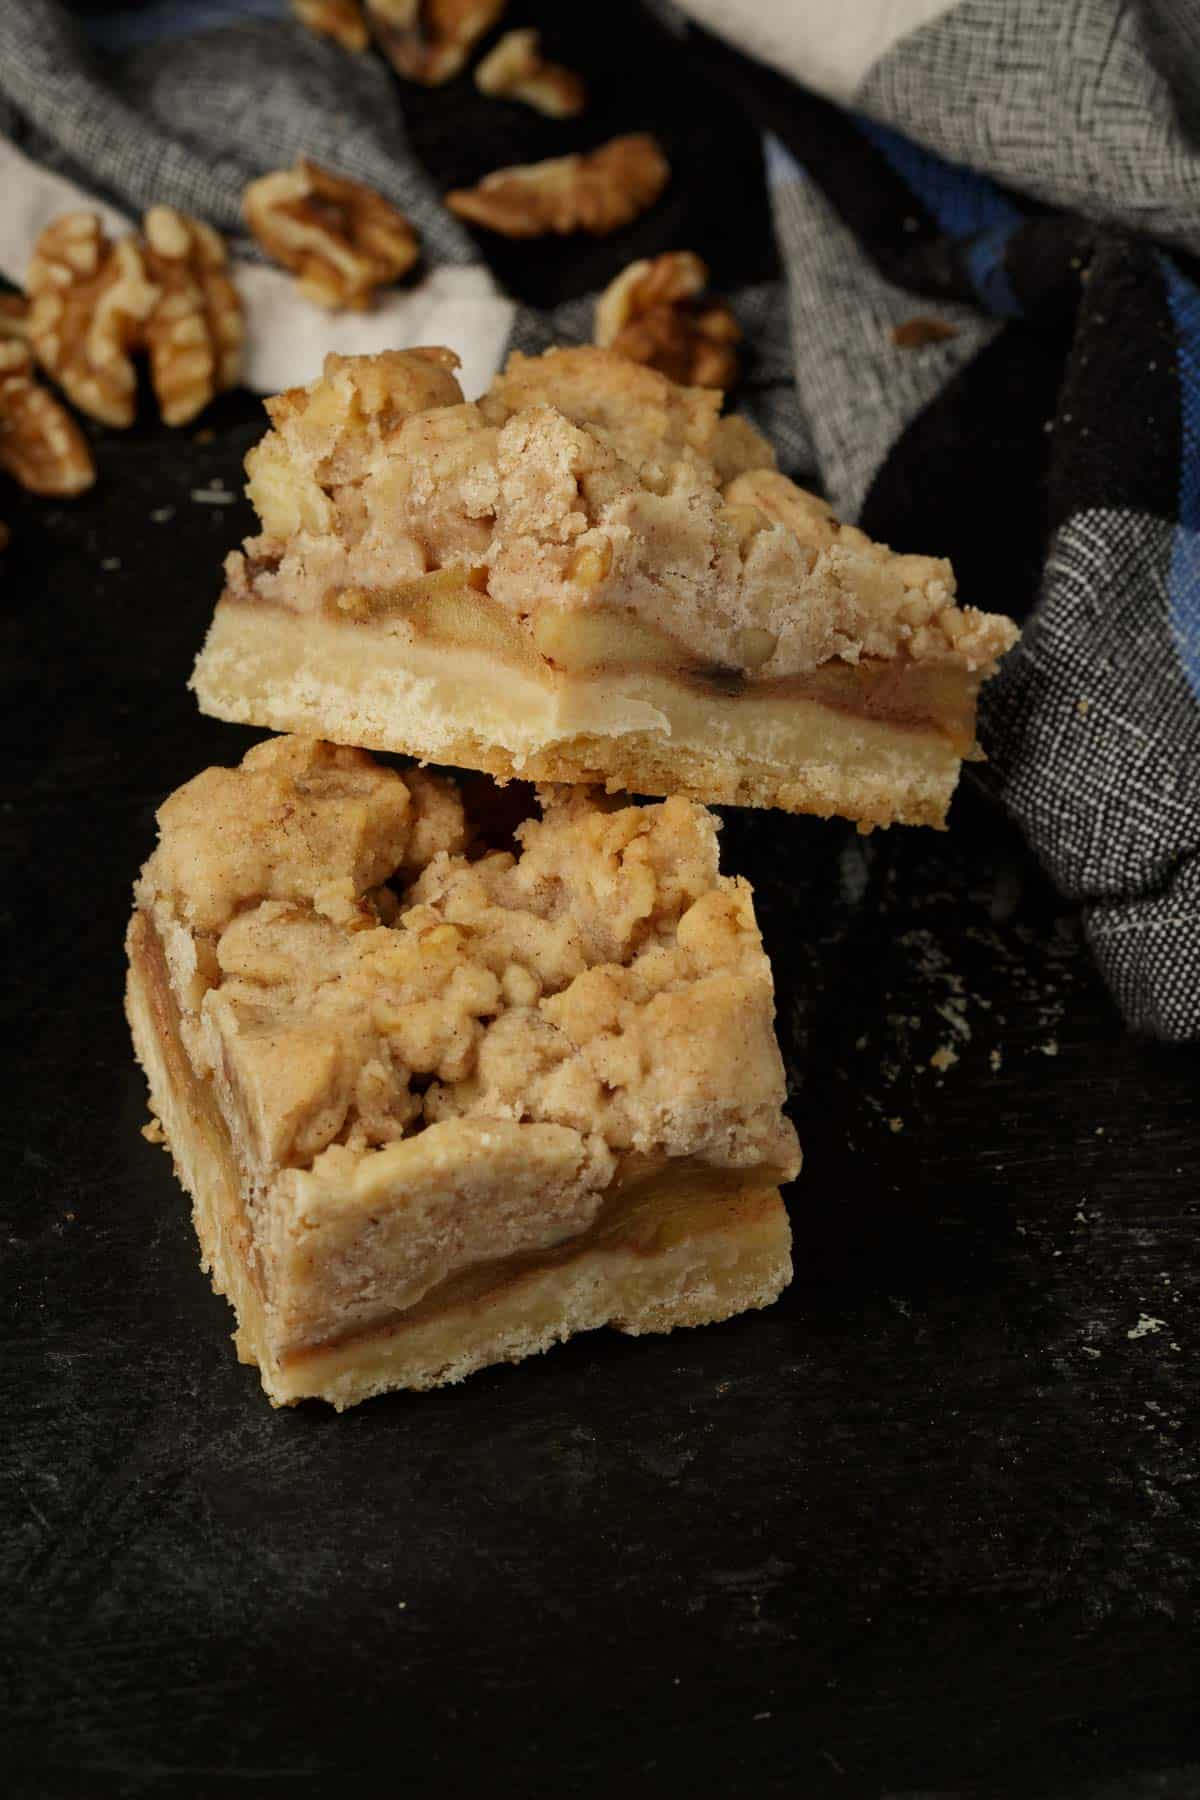 Two apple bars stacked with walnuts in the background.